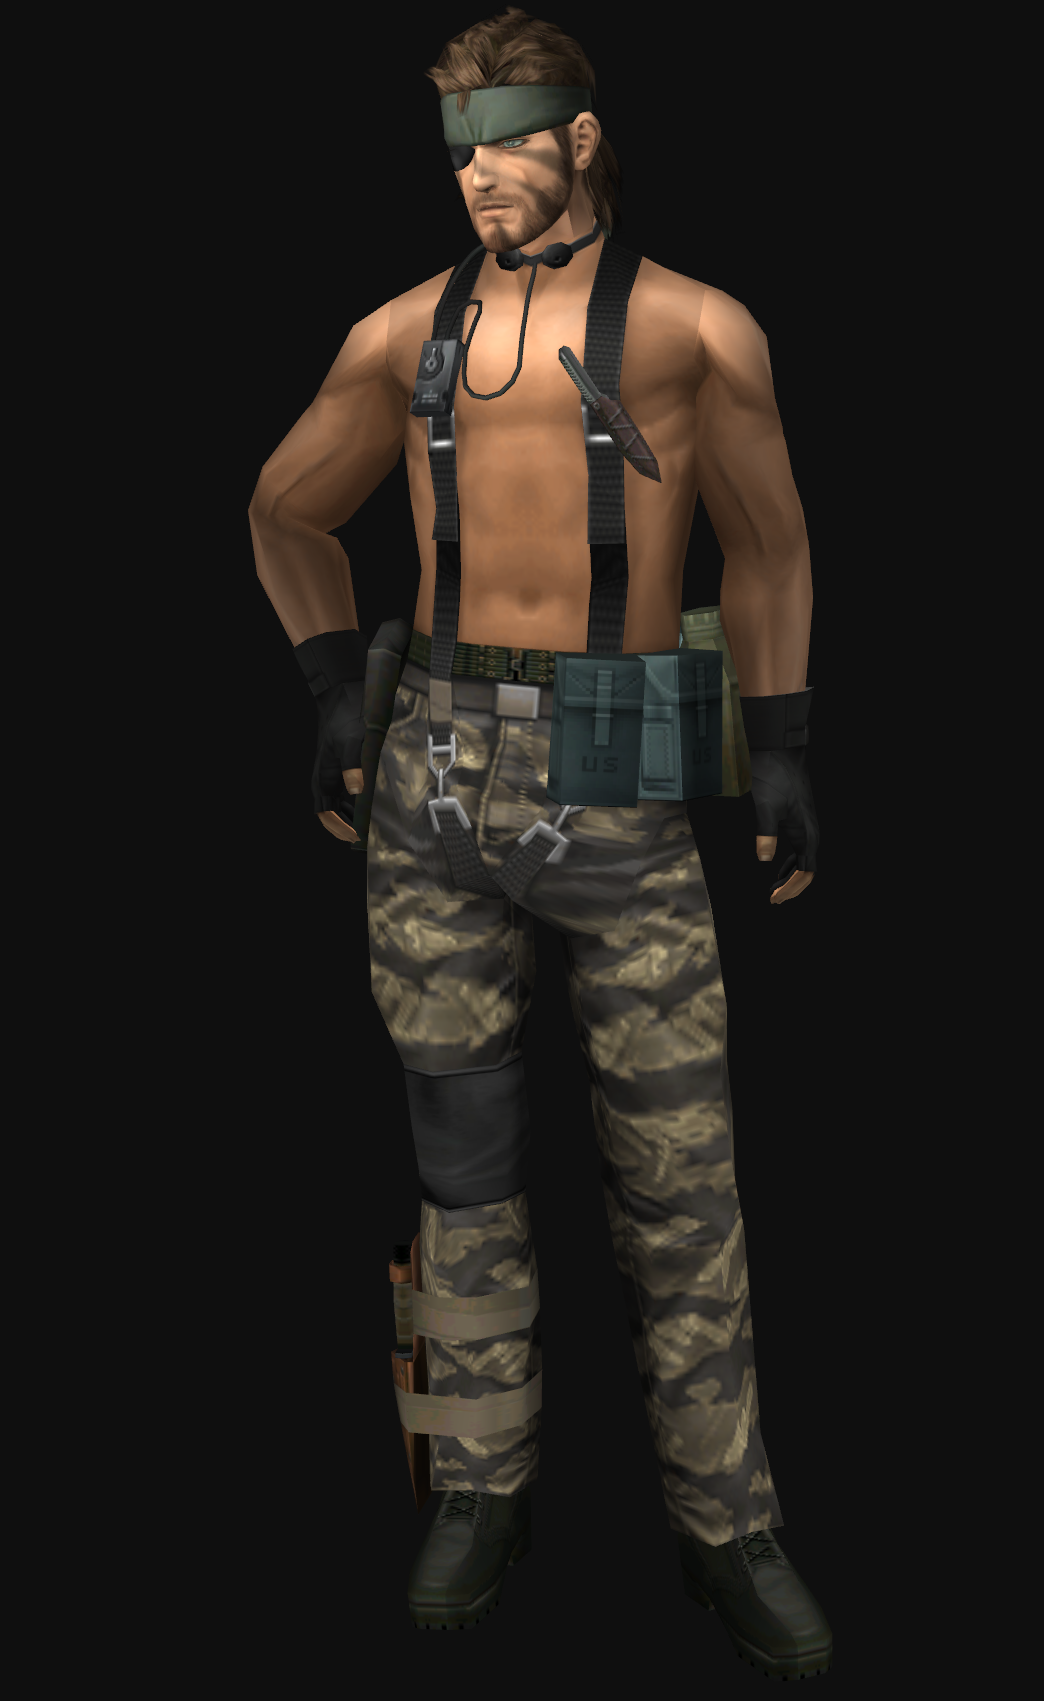 naked snake scientist by - photo #38